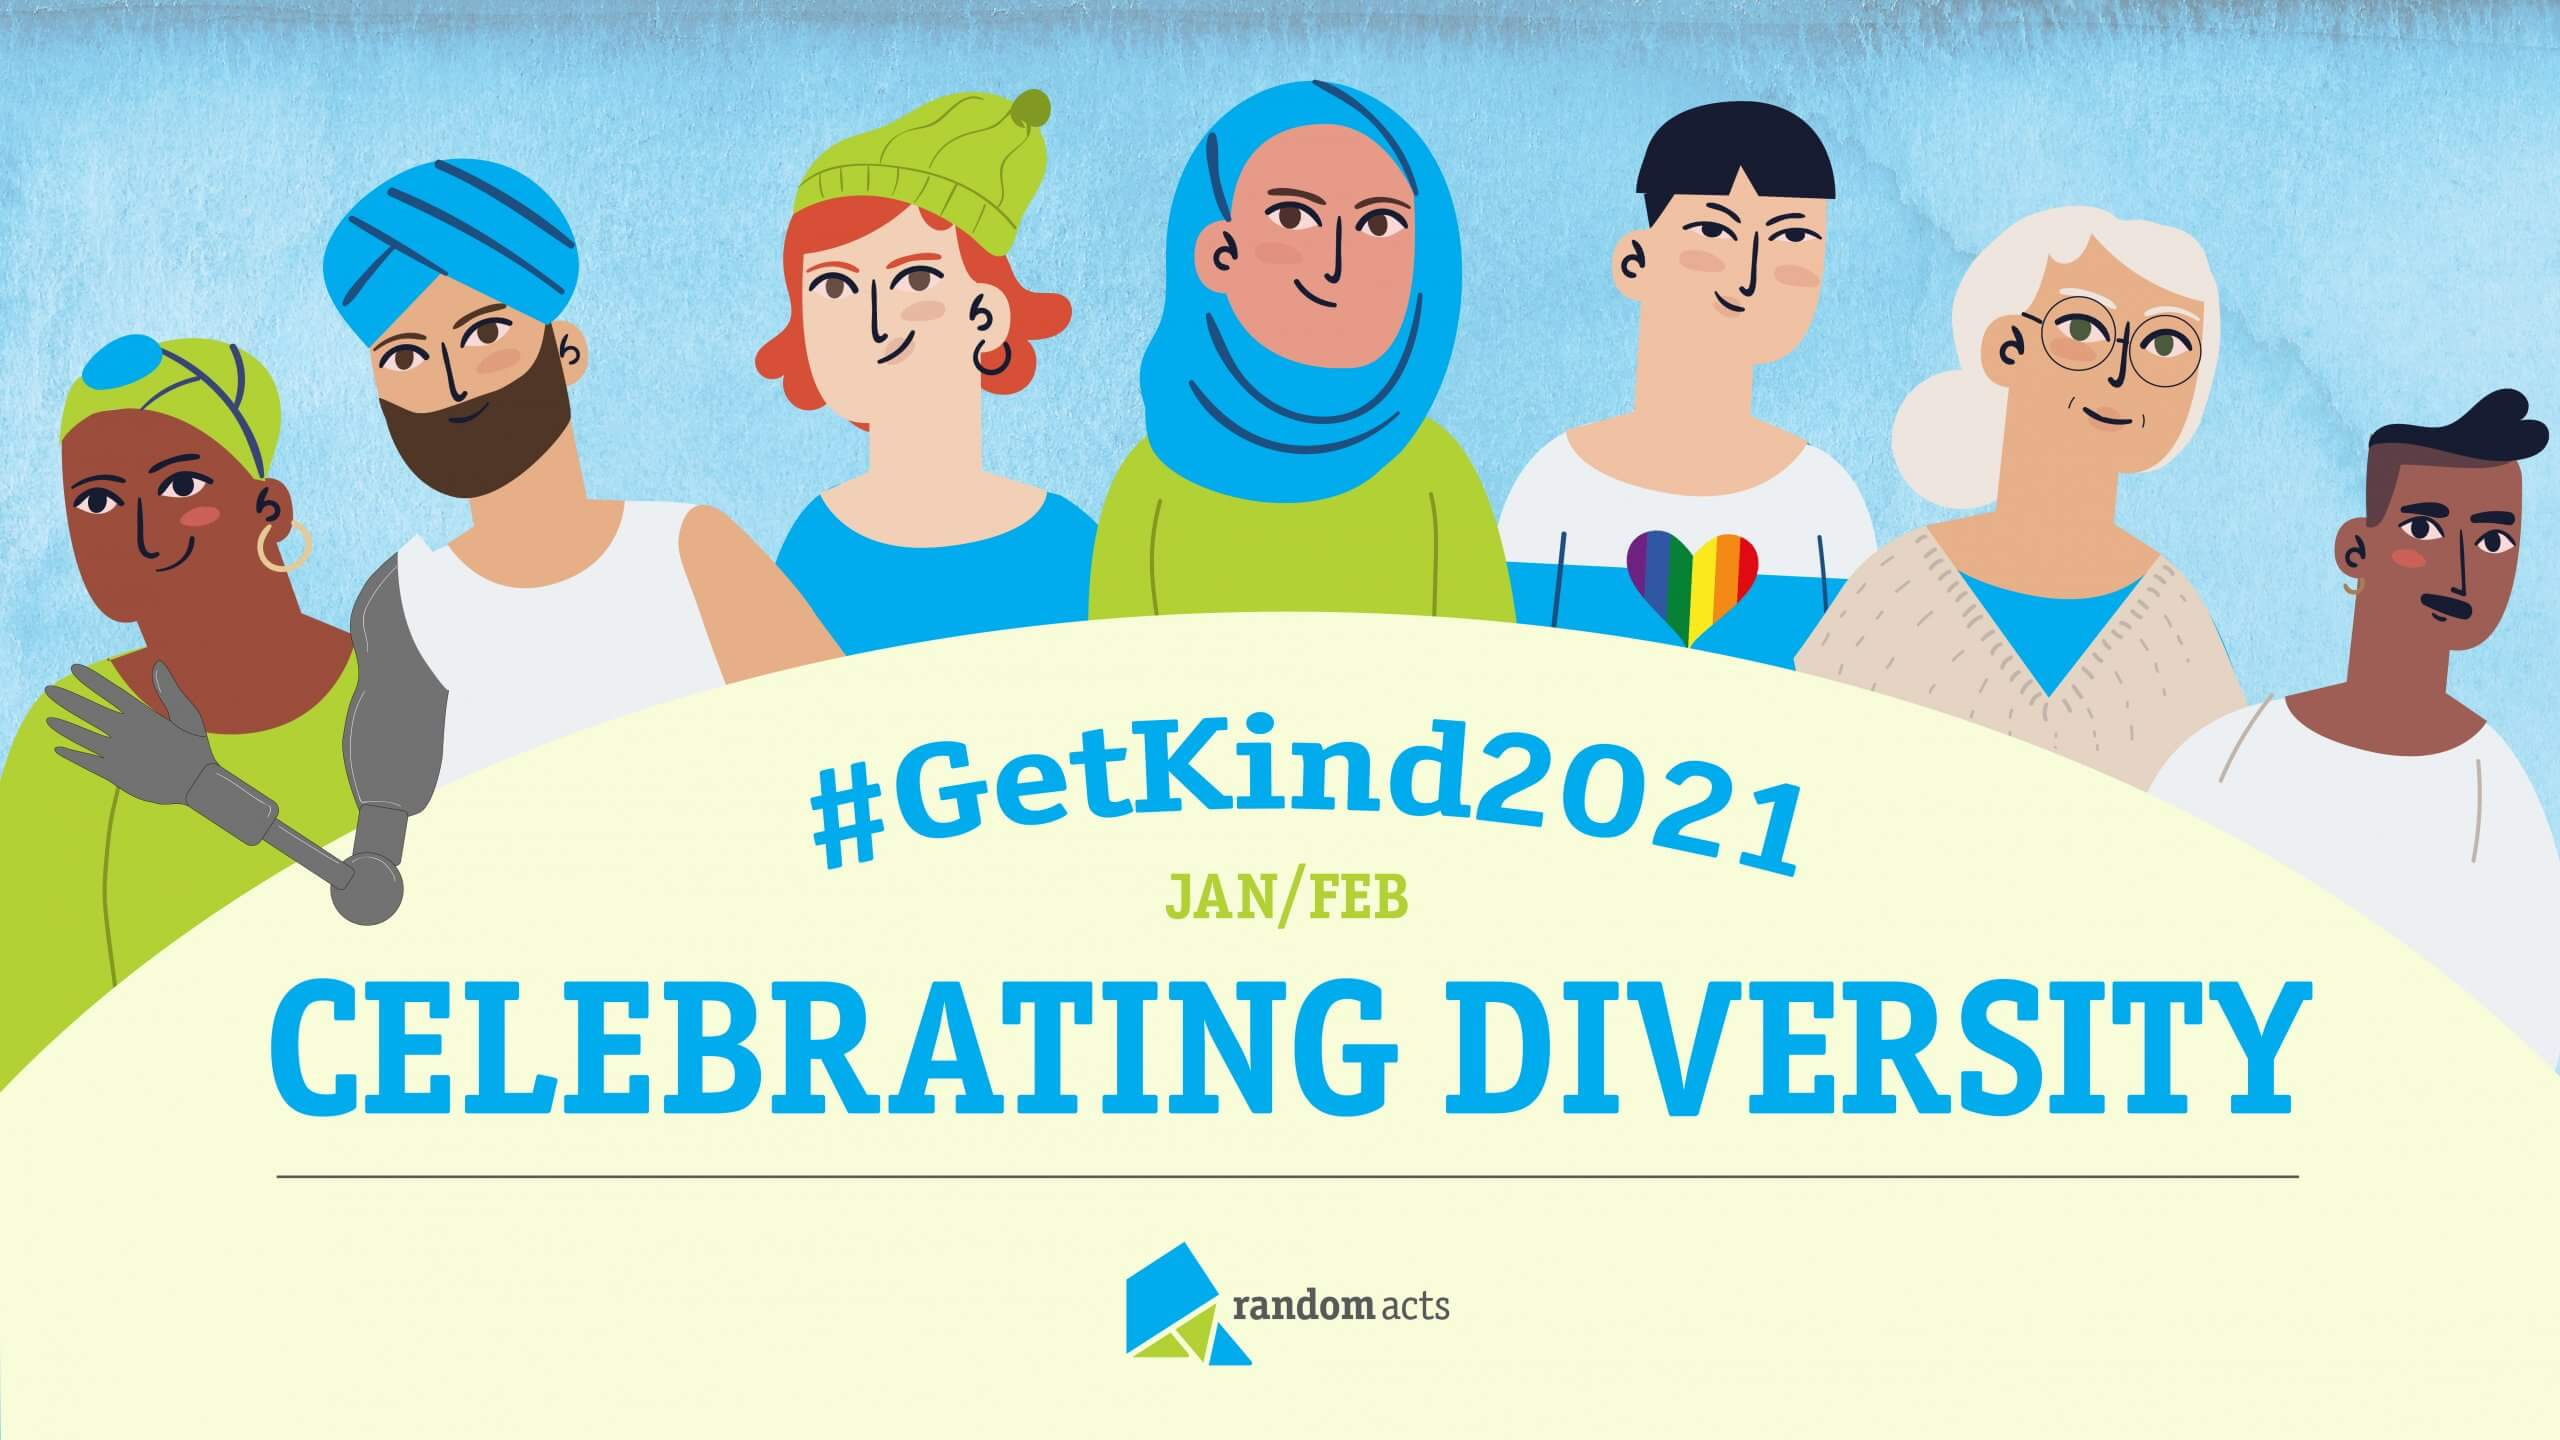 #GetKind2021 Jan/Feb Celebrating Diversity at Random Acts. Several people of various races, genders, religions, sexual orientations, ages, and abilities are shown above the text.